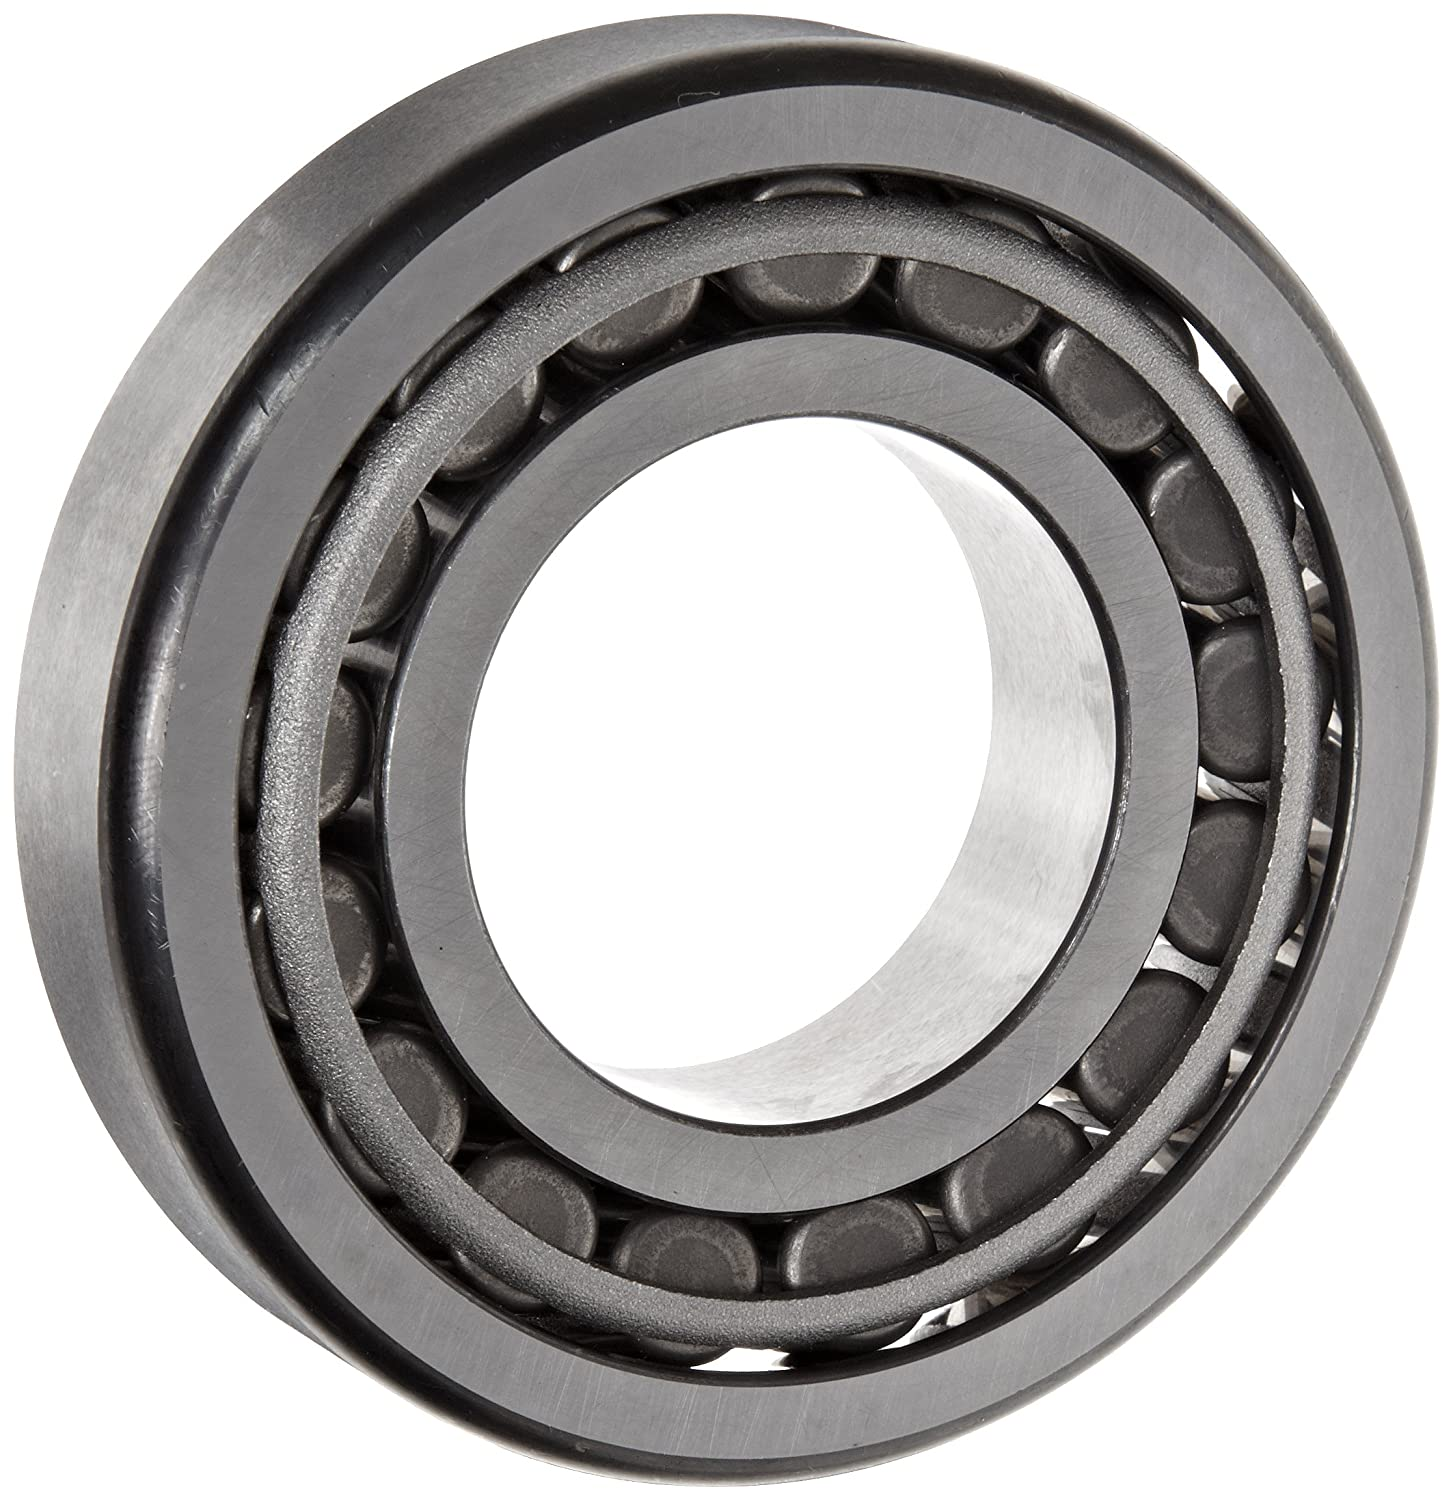 FAG 33220 Tapered Roller Bearing Cone Sales of SALE items from new works Tole Great interest Standard and Cup Set